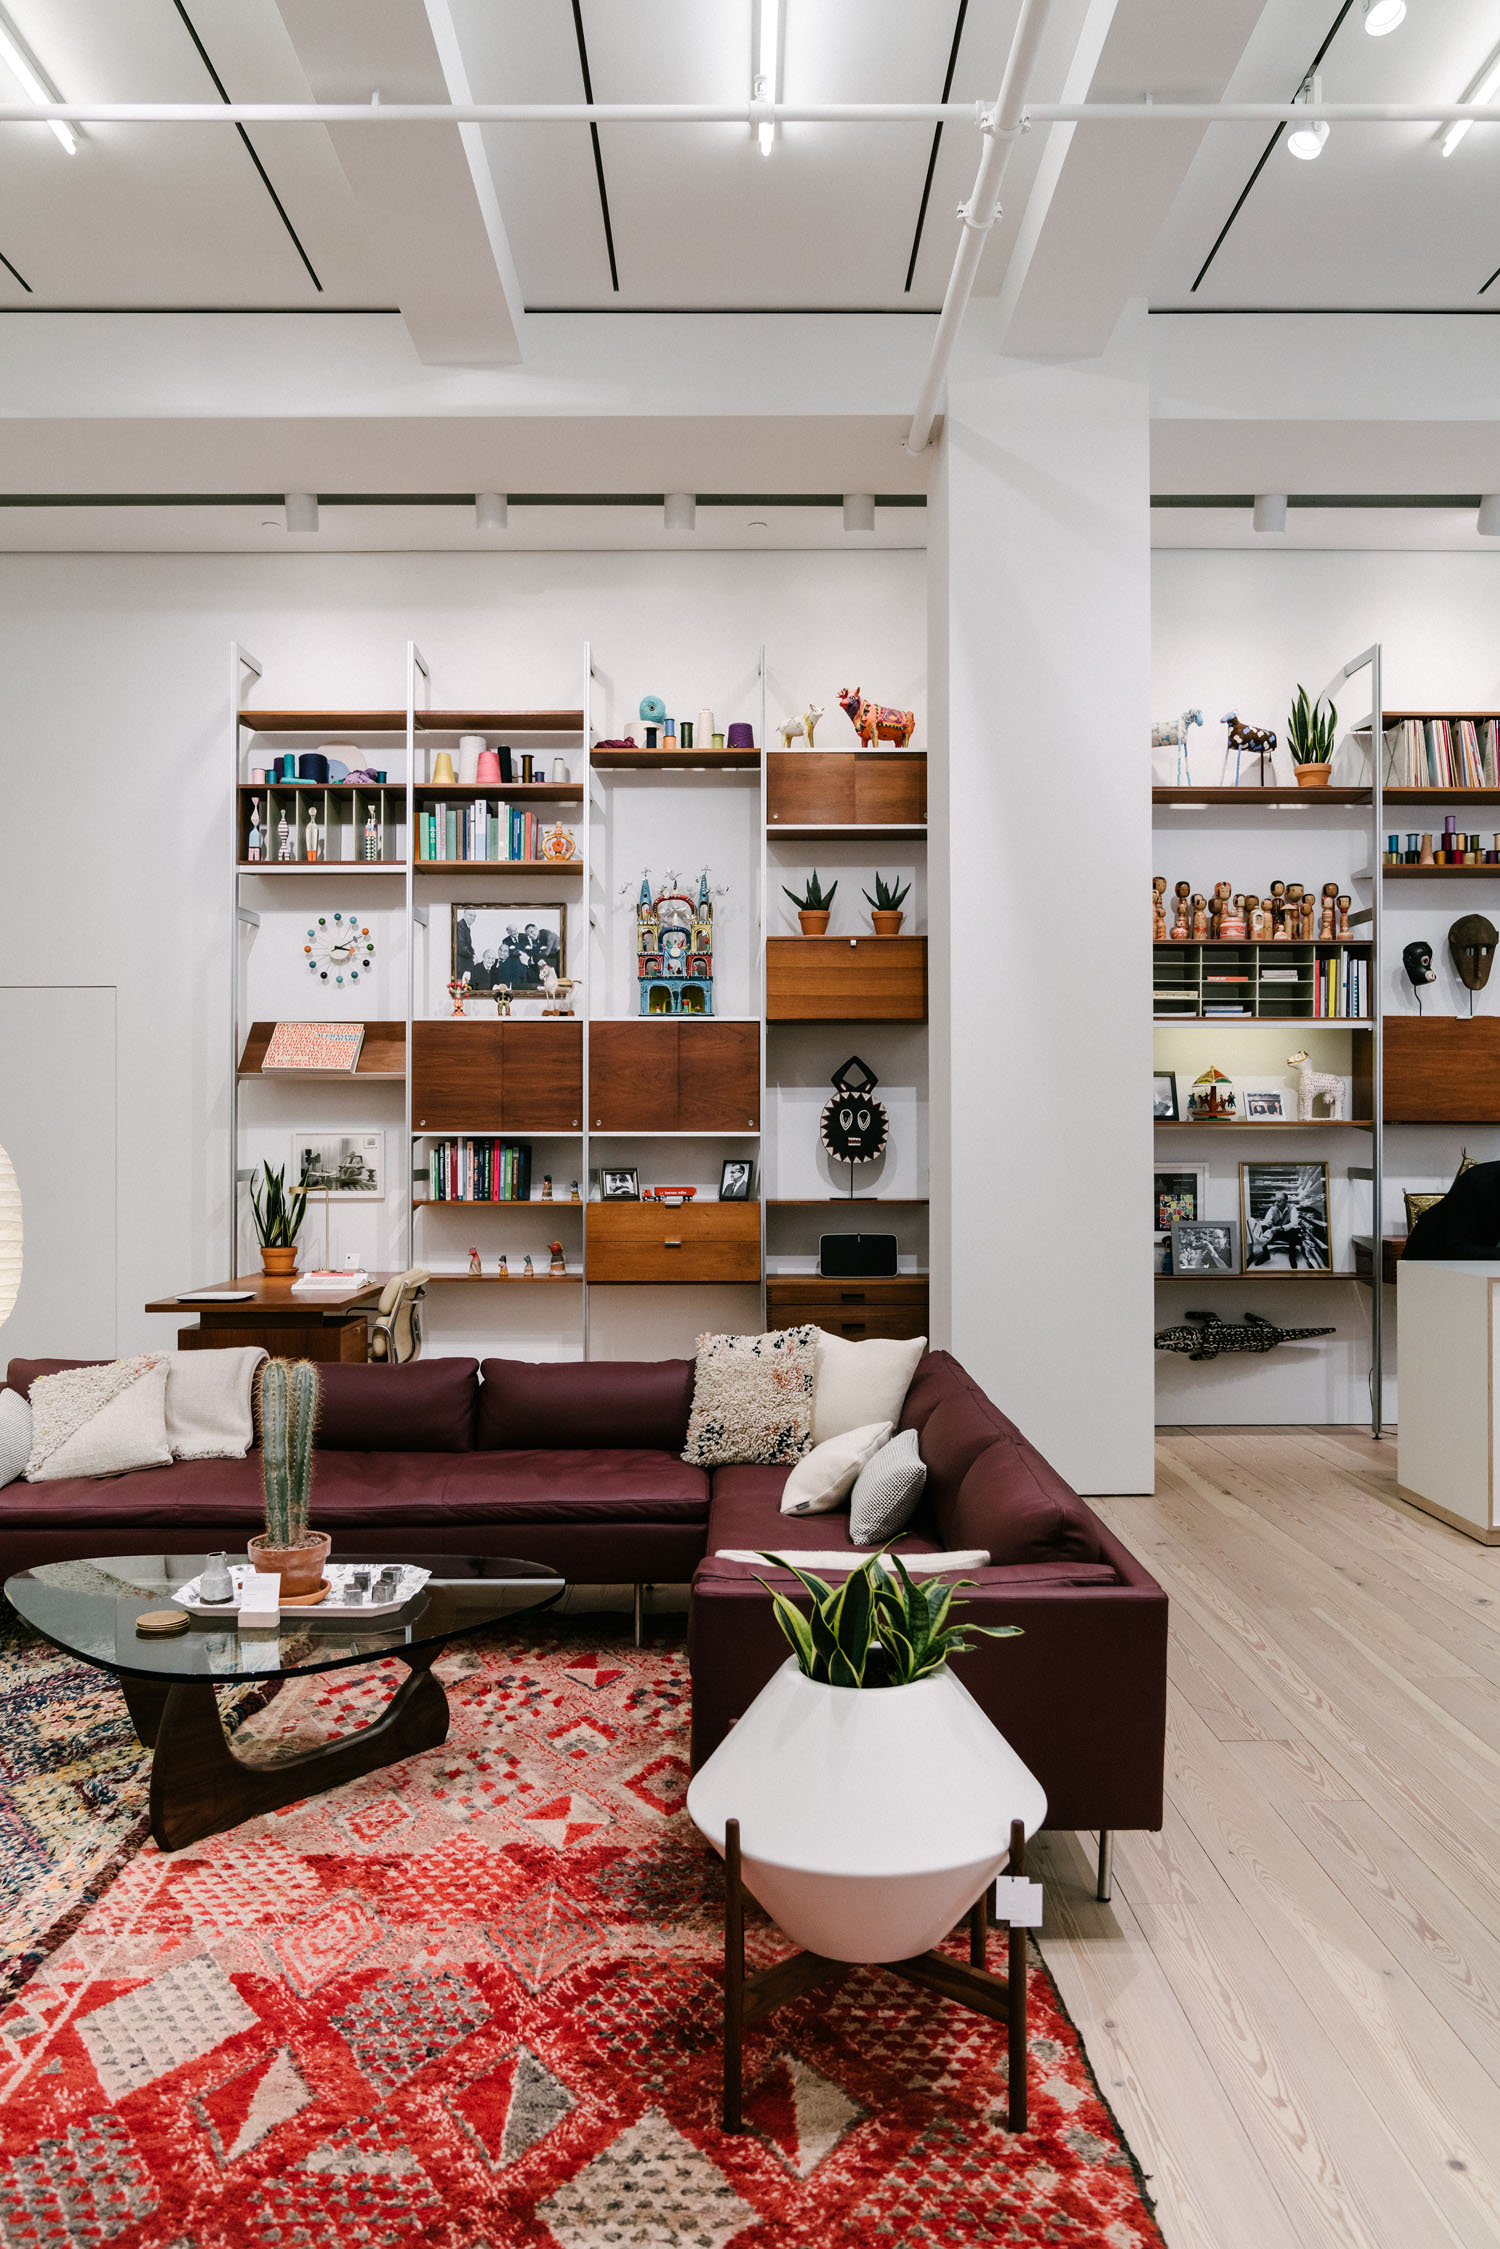 shop 'till you drop - Treat yourself to some retail therapy.Shown here:Herman Miller